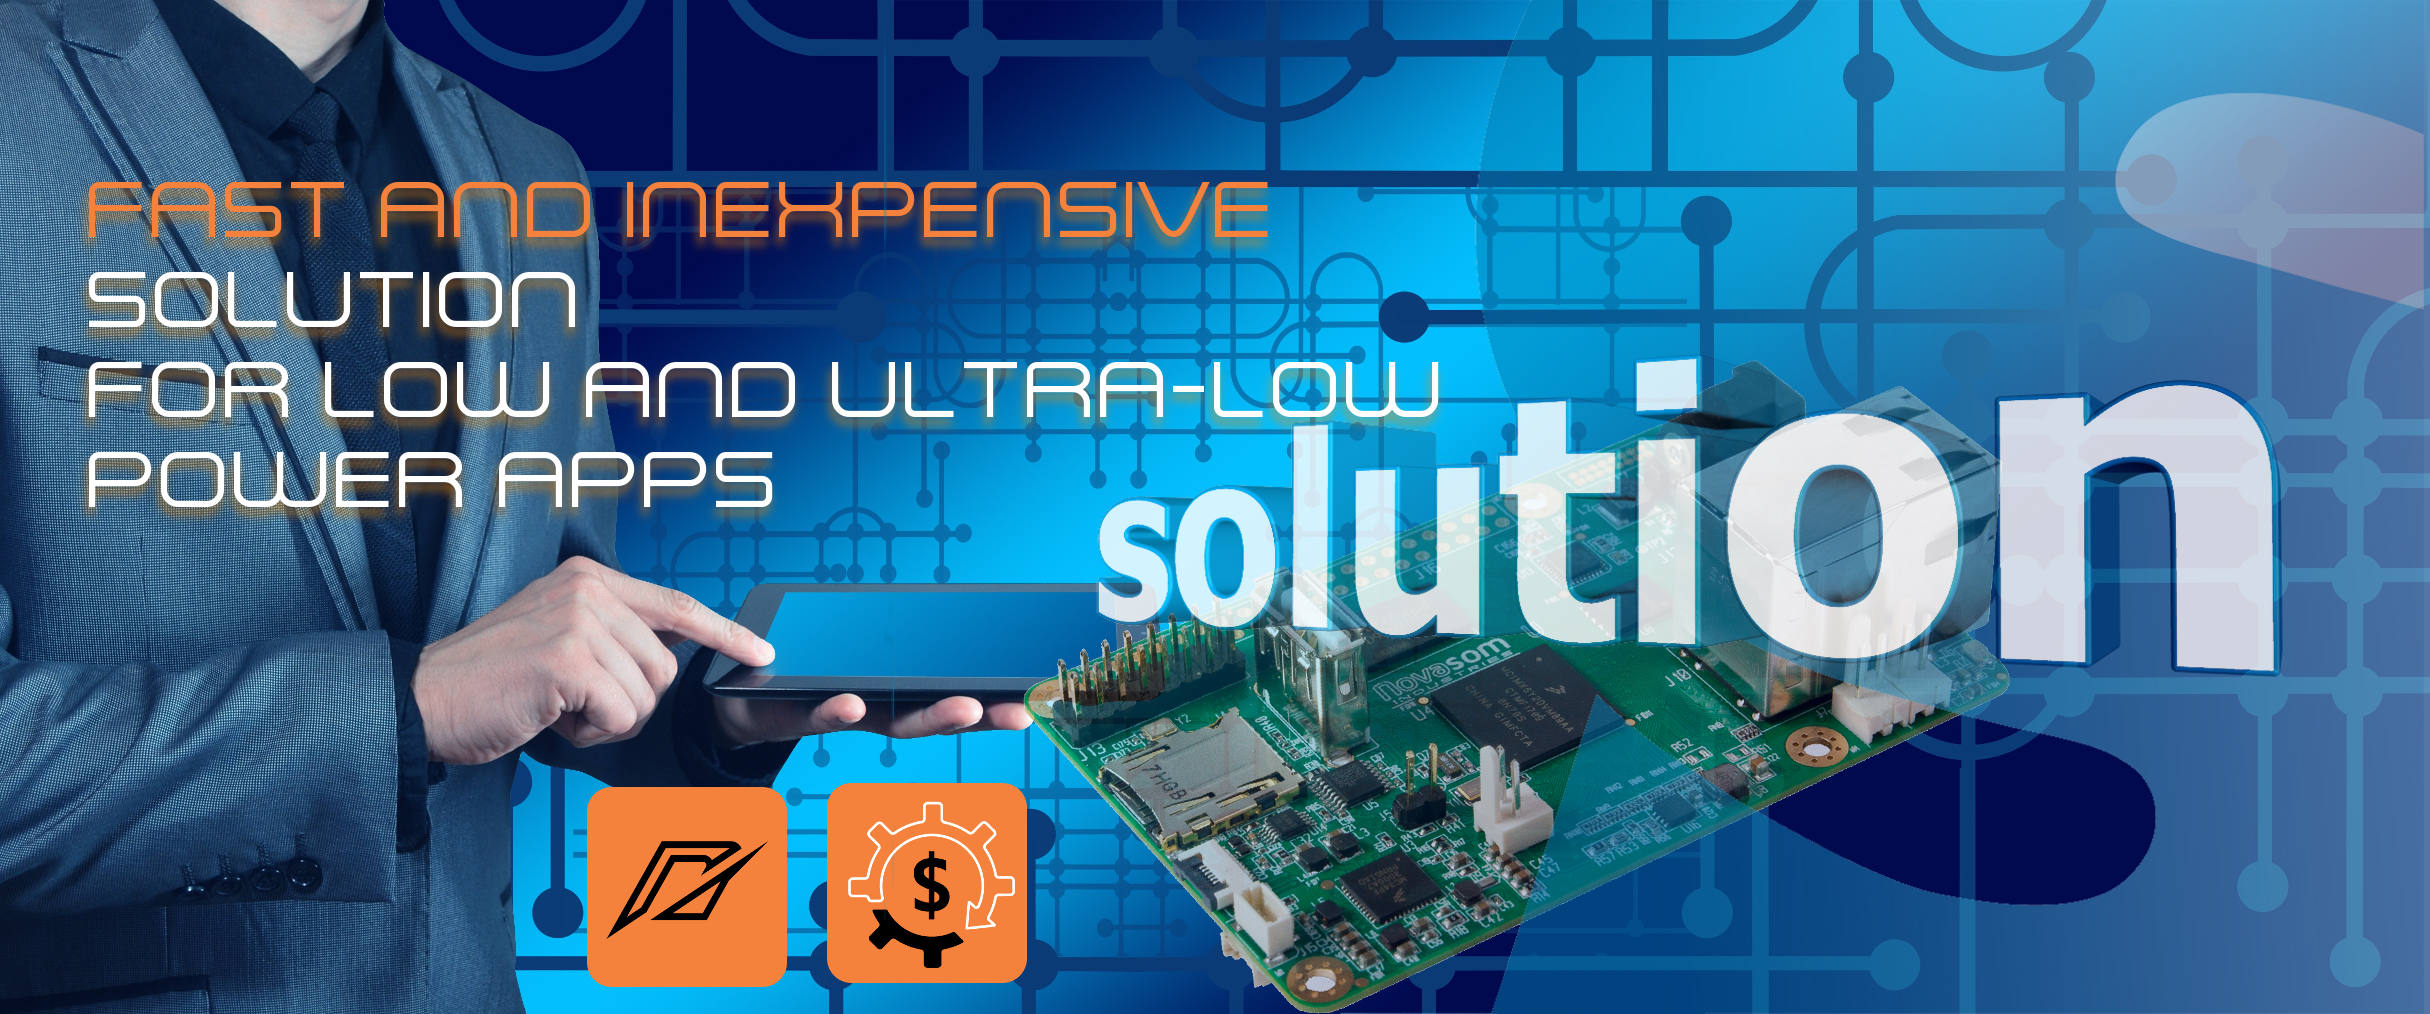 U5 - Fast & inexpensive solution, not just a board… A solution